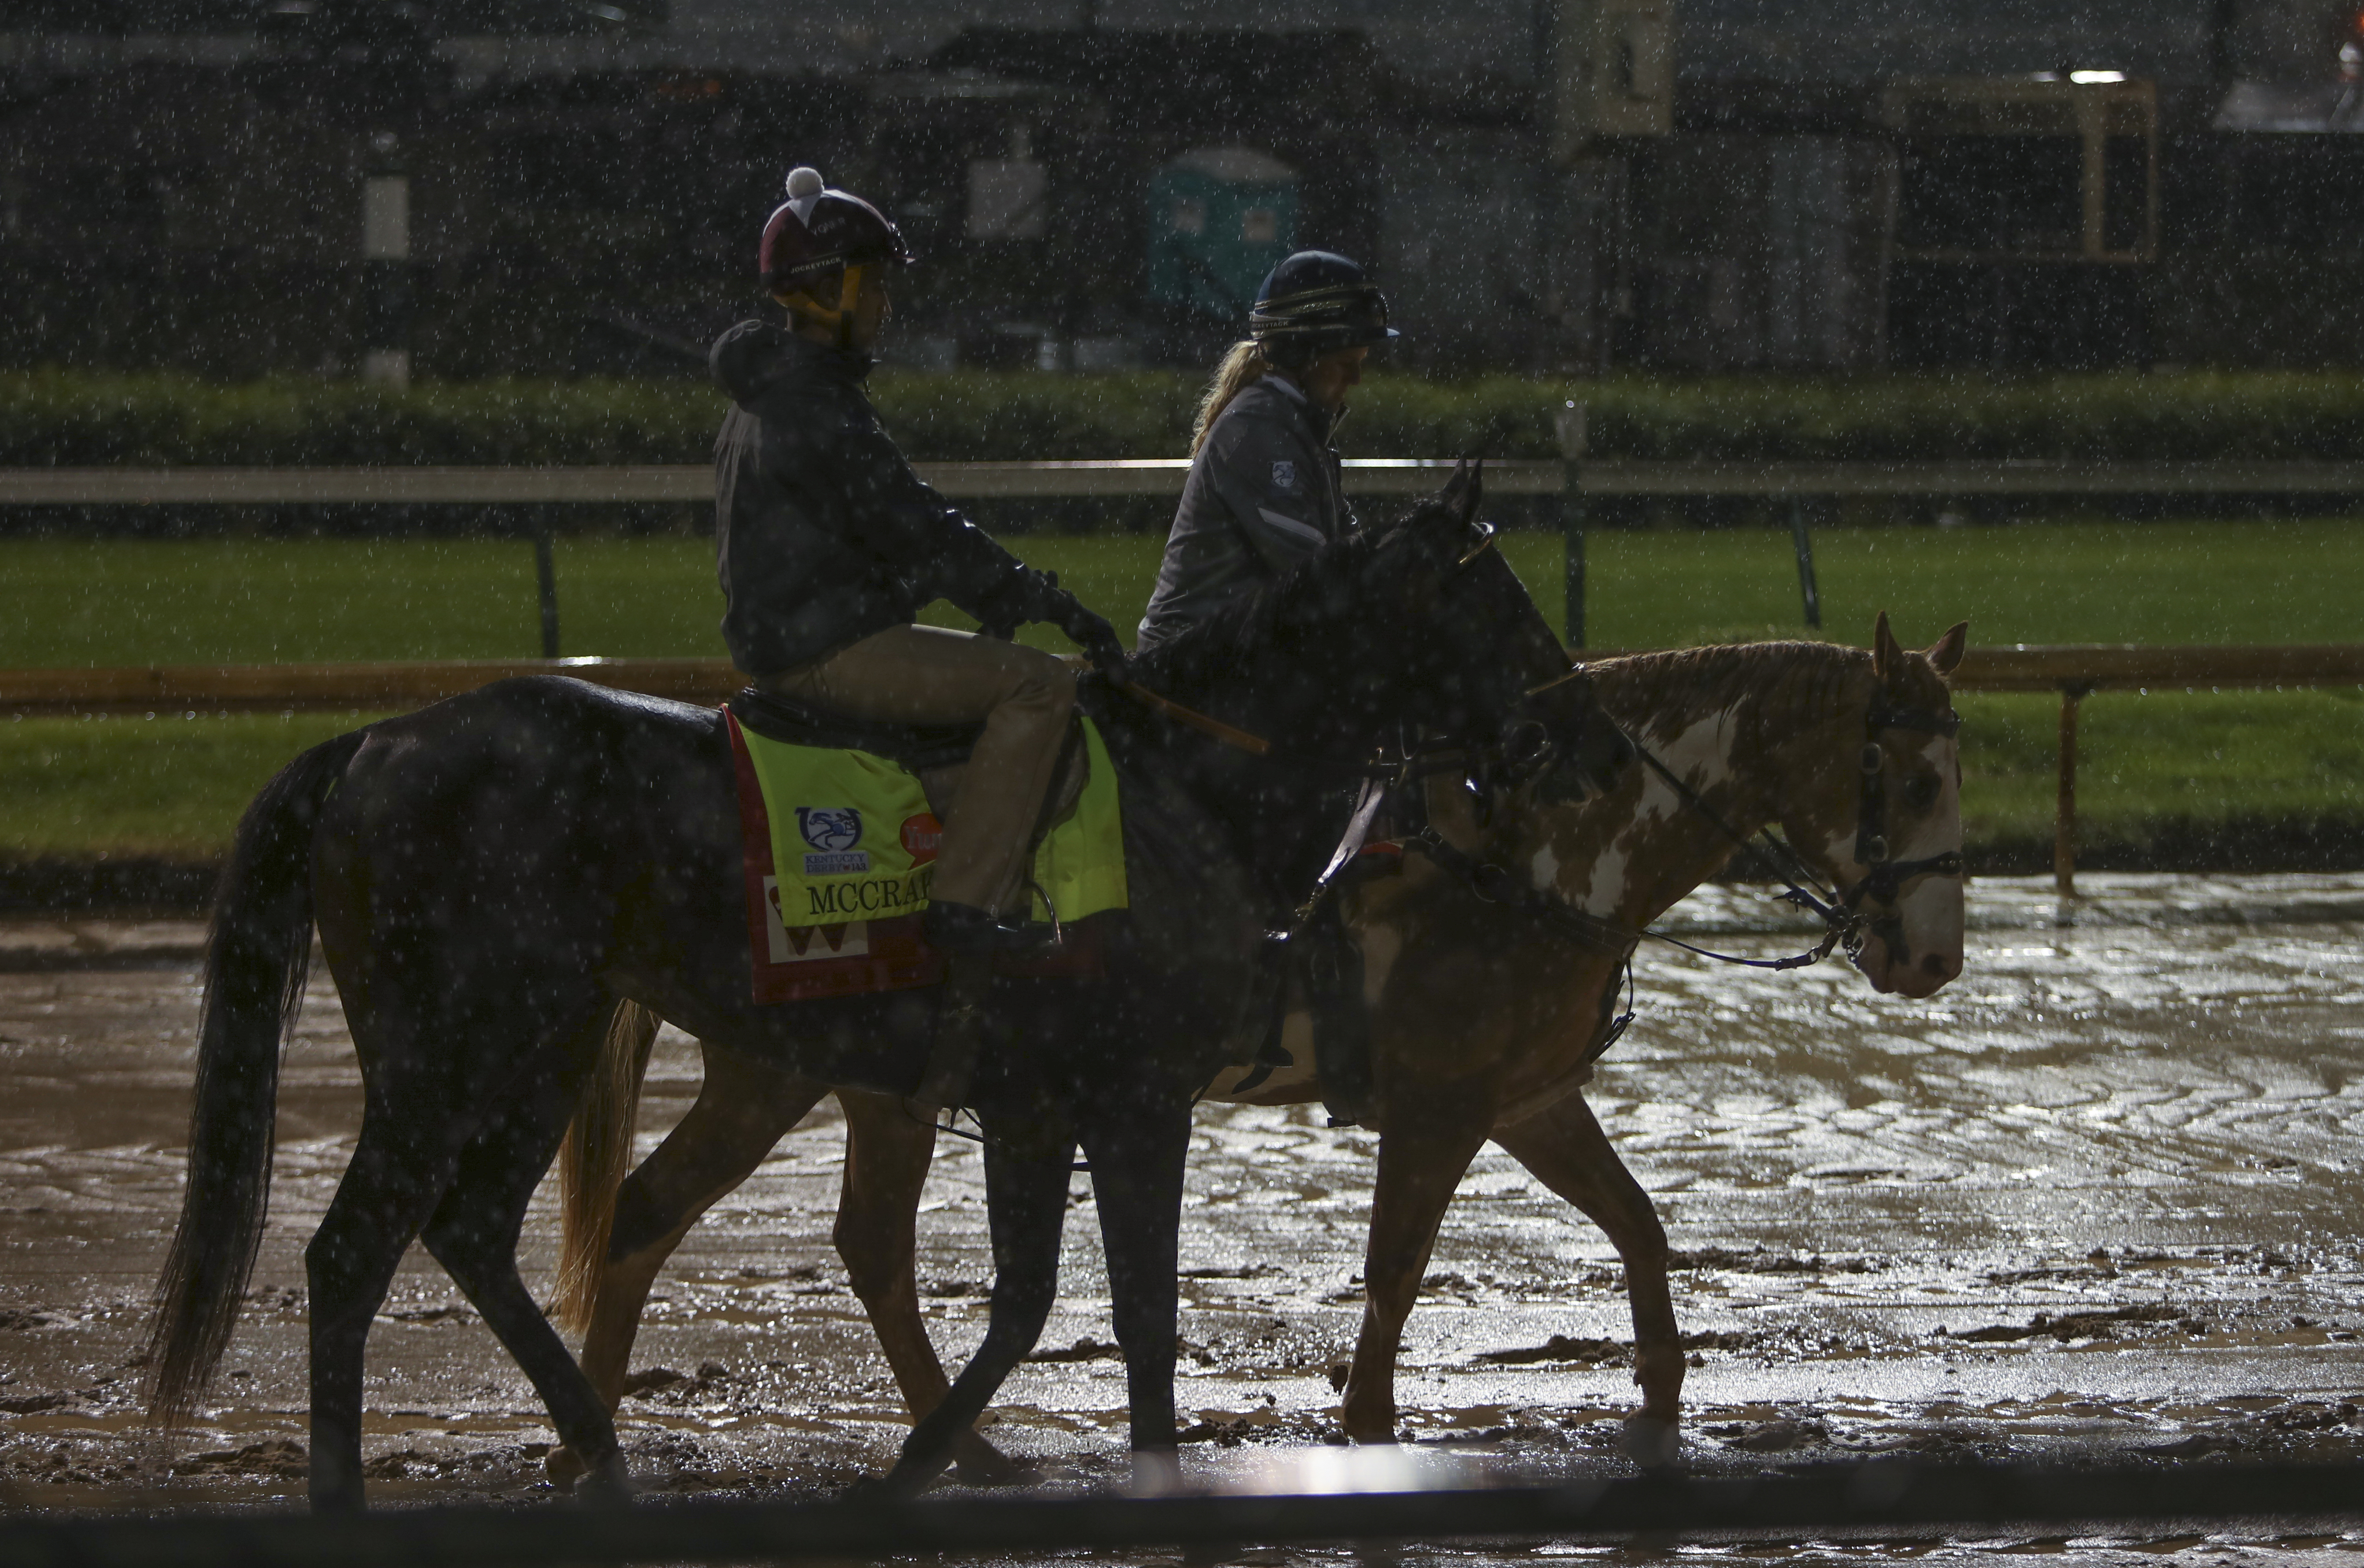 Kentucky Derby entrant McCracken, left, ridden by exercise rider Yoni Orantes, goes out for an early morning practice run for the 143rd running of the Kentucky Derby horse race at Churchill Downs Friday, May 5, 2017, in Louisville, Ky. (AP Photo/Garry Jon